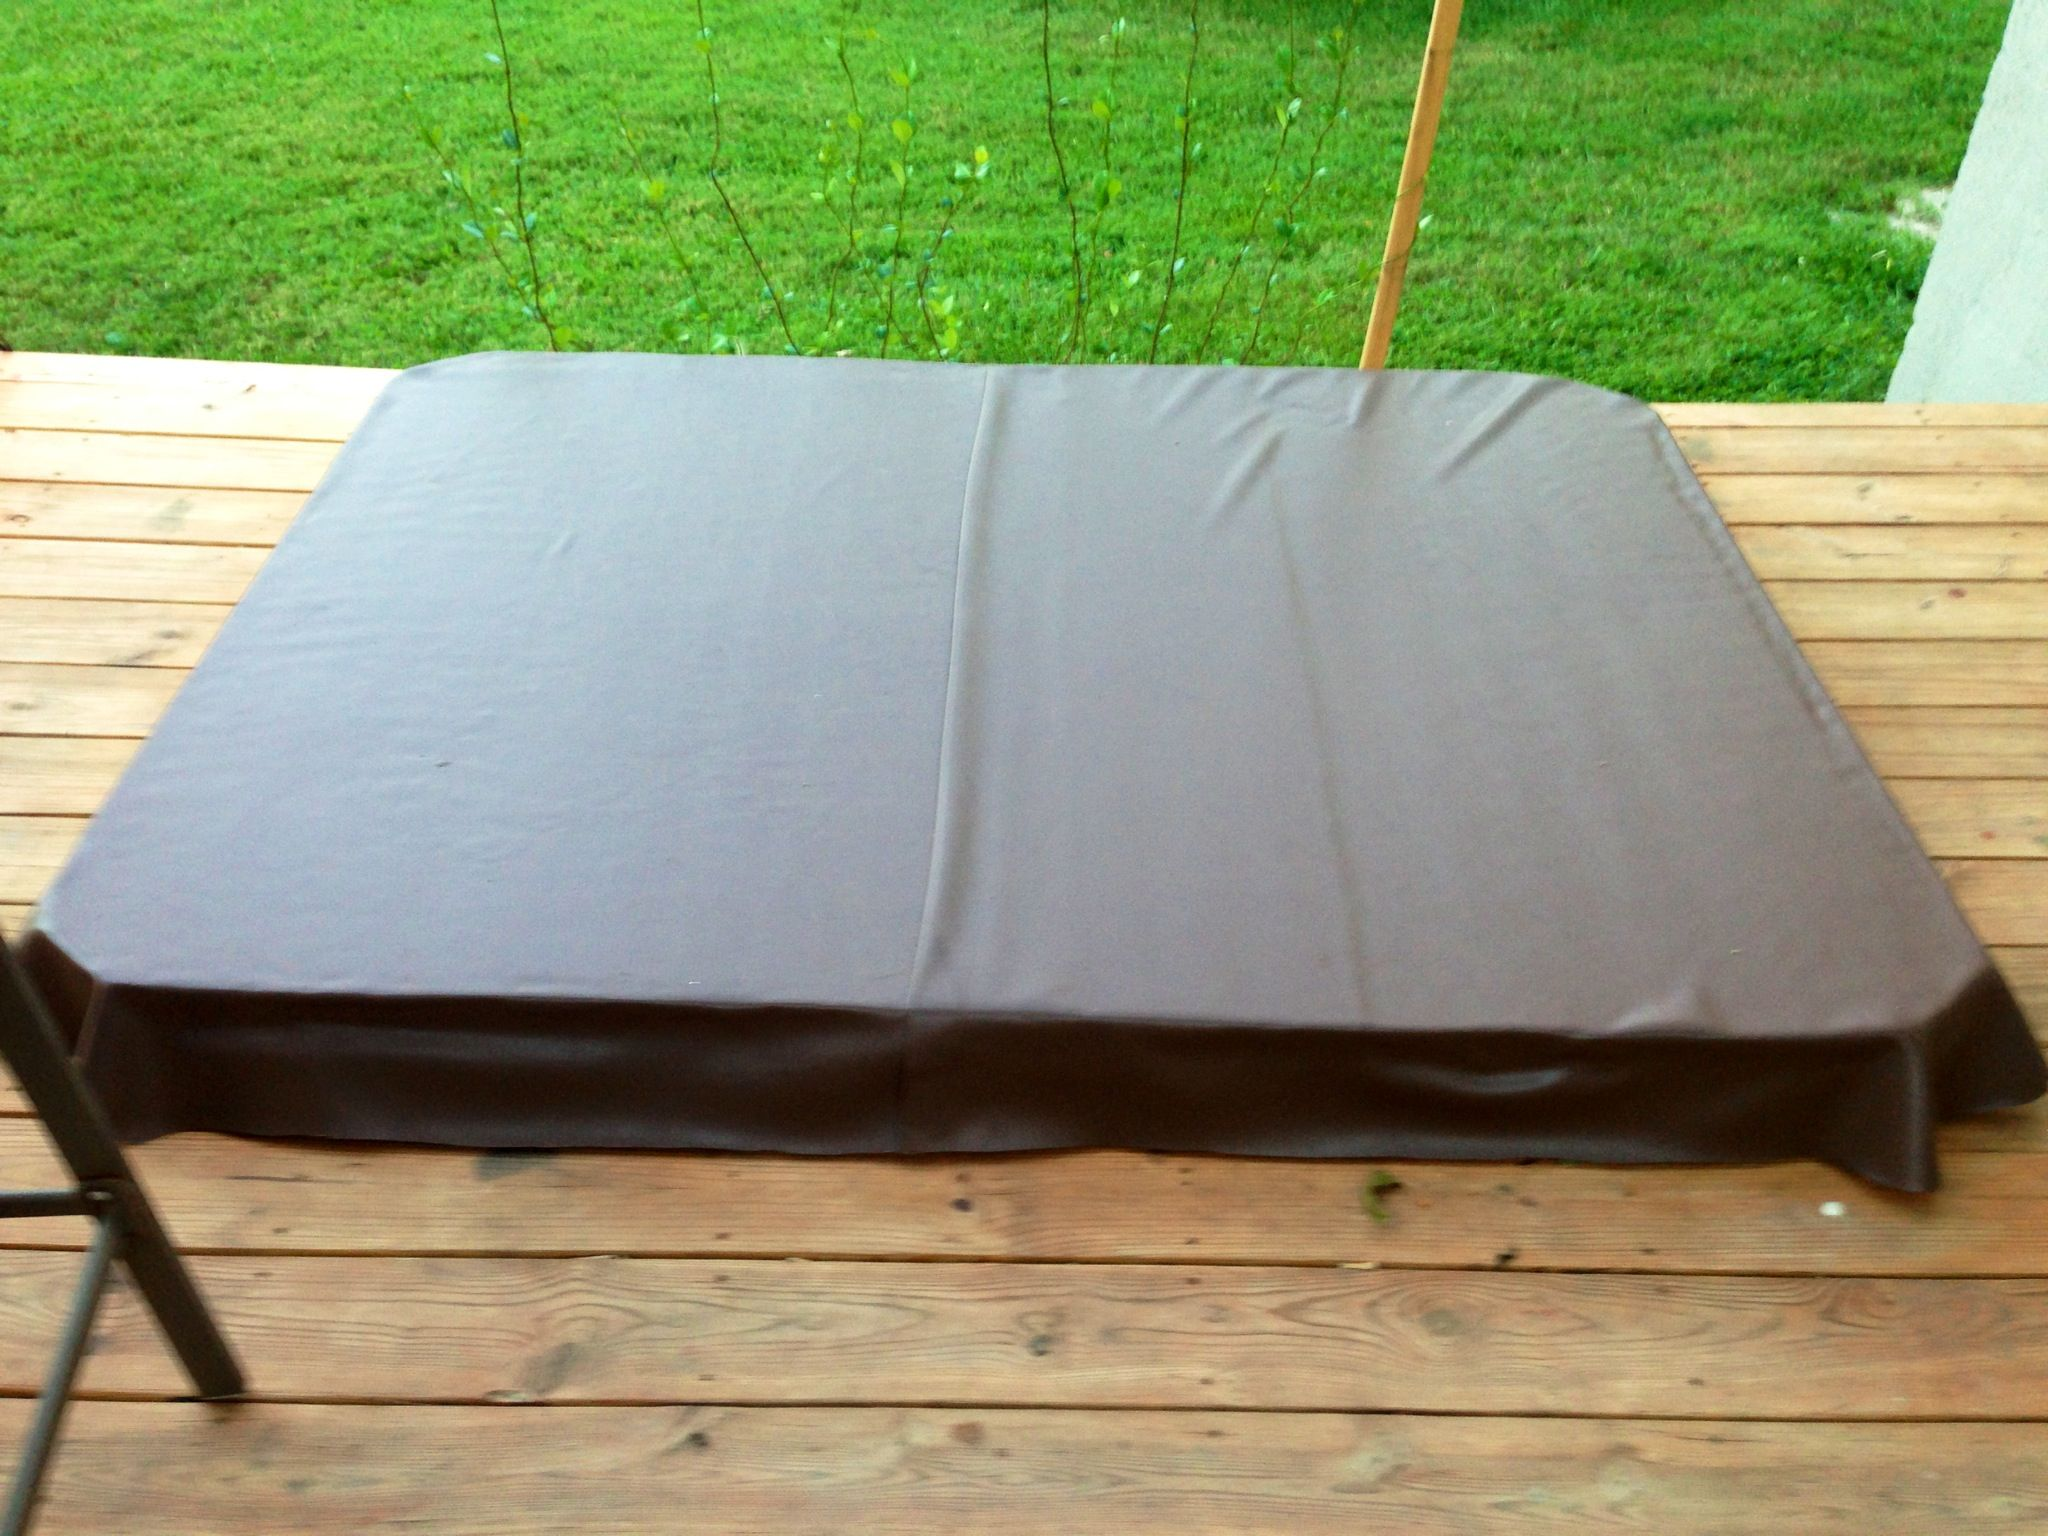 Build your own hot tub cover lifter